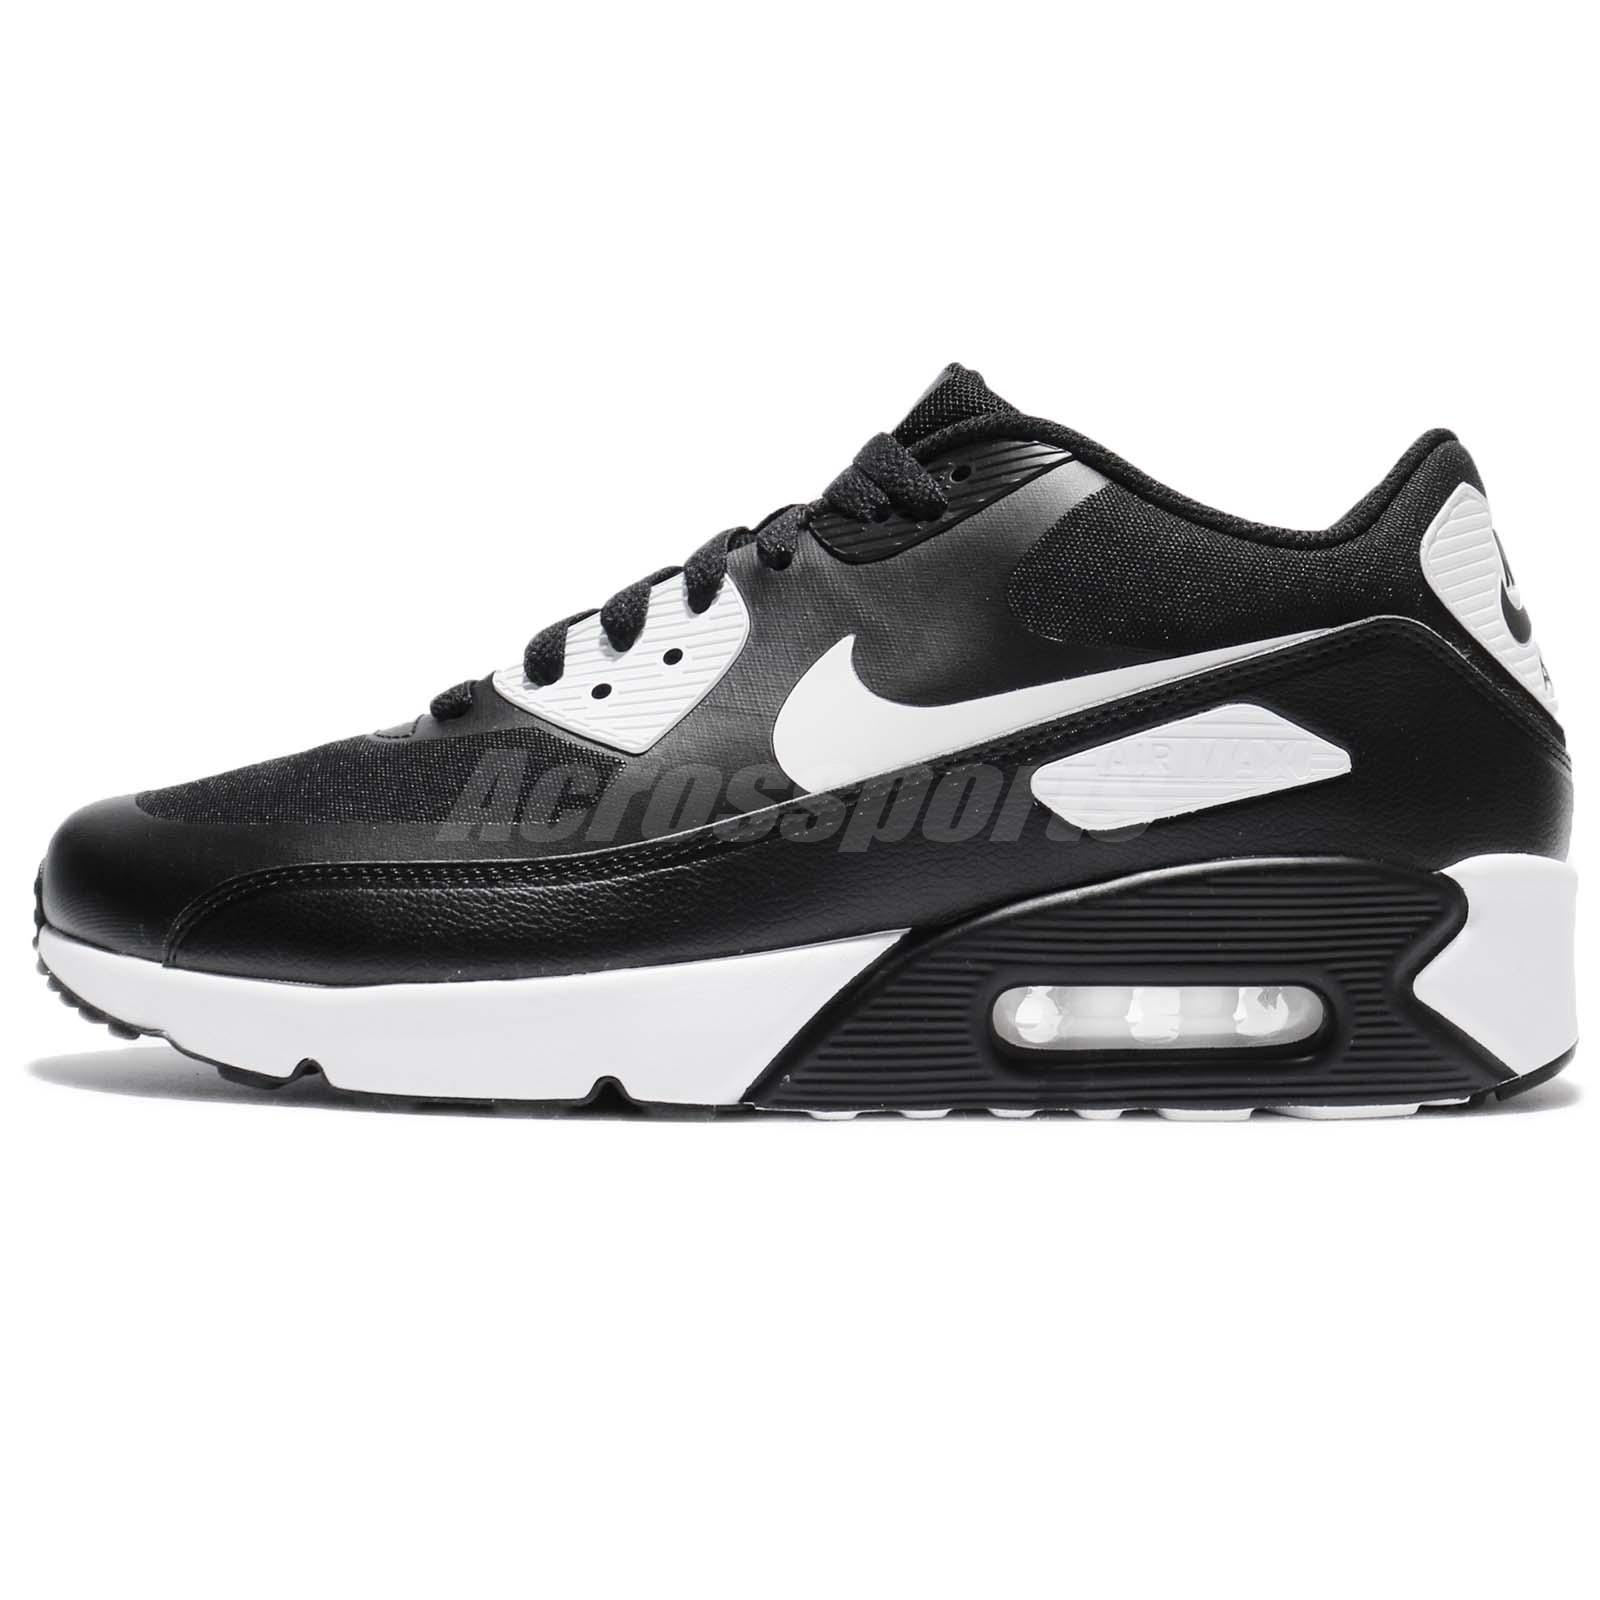 33047fcc50f9 denmark air max shoes in kenya 5a9dd 8c370  best price nike air max 90  ultra 2.0 essential black white men running shoes 875695 008